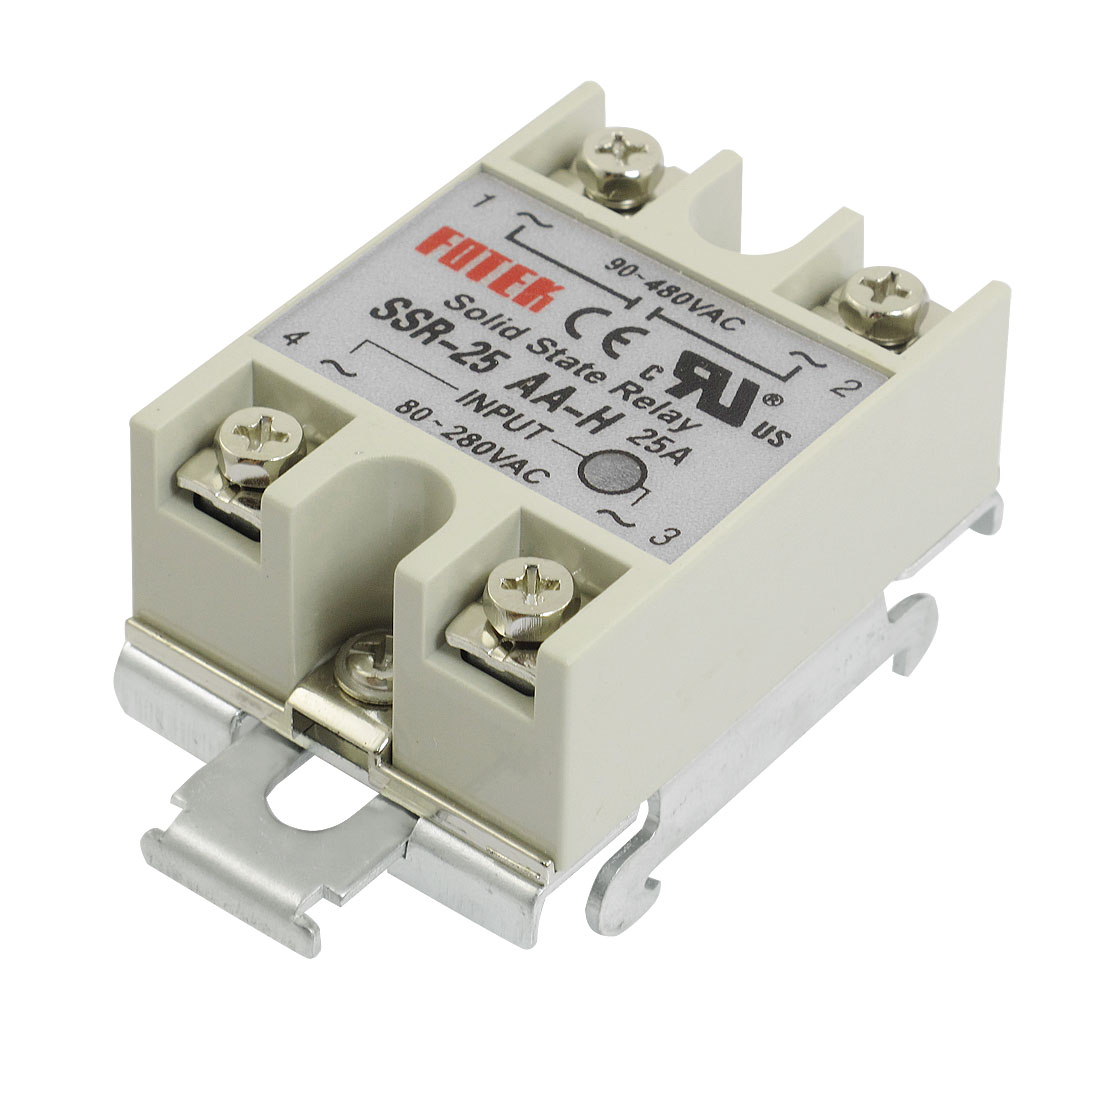 AC 80-280V Input Temperature Control Solid State Relay w DIN Rail 25A SSR-25AA-H